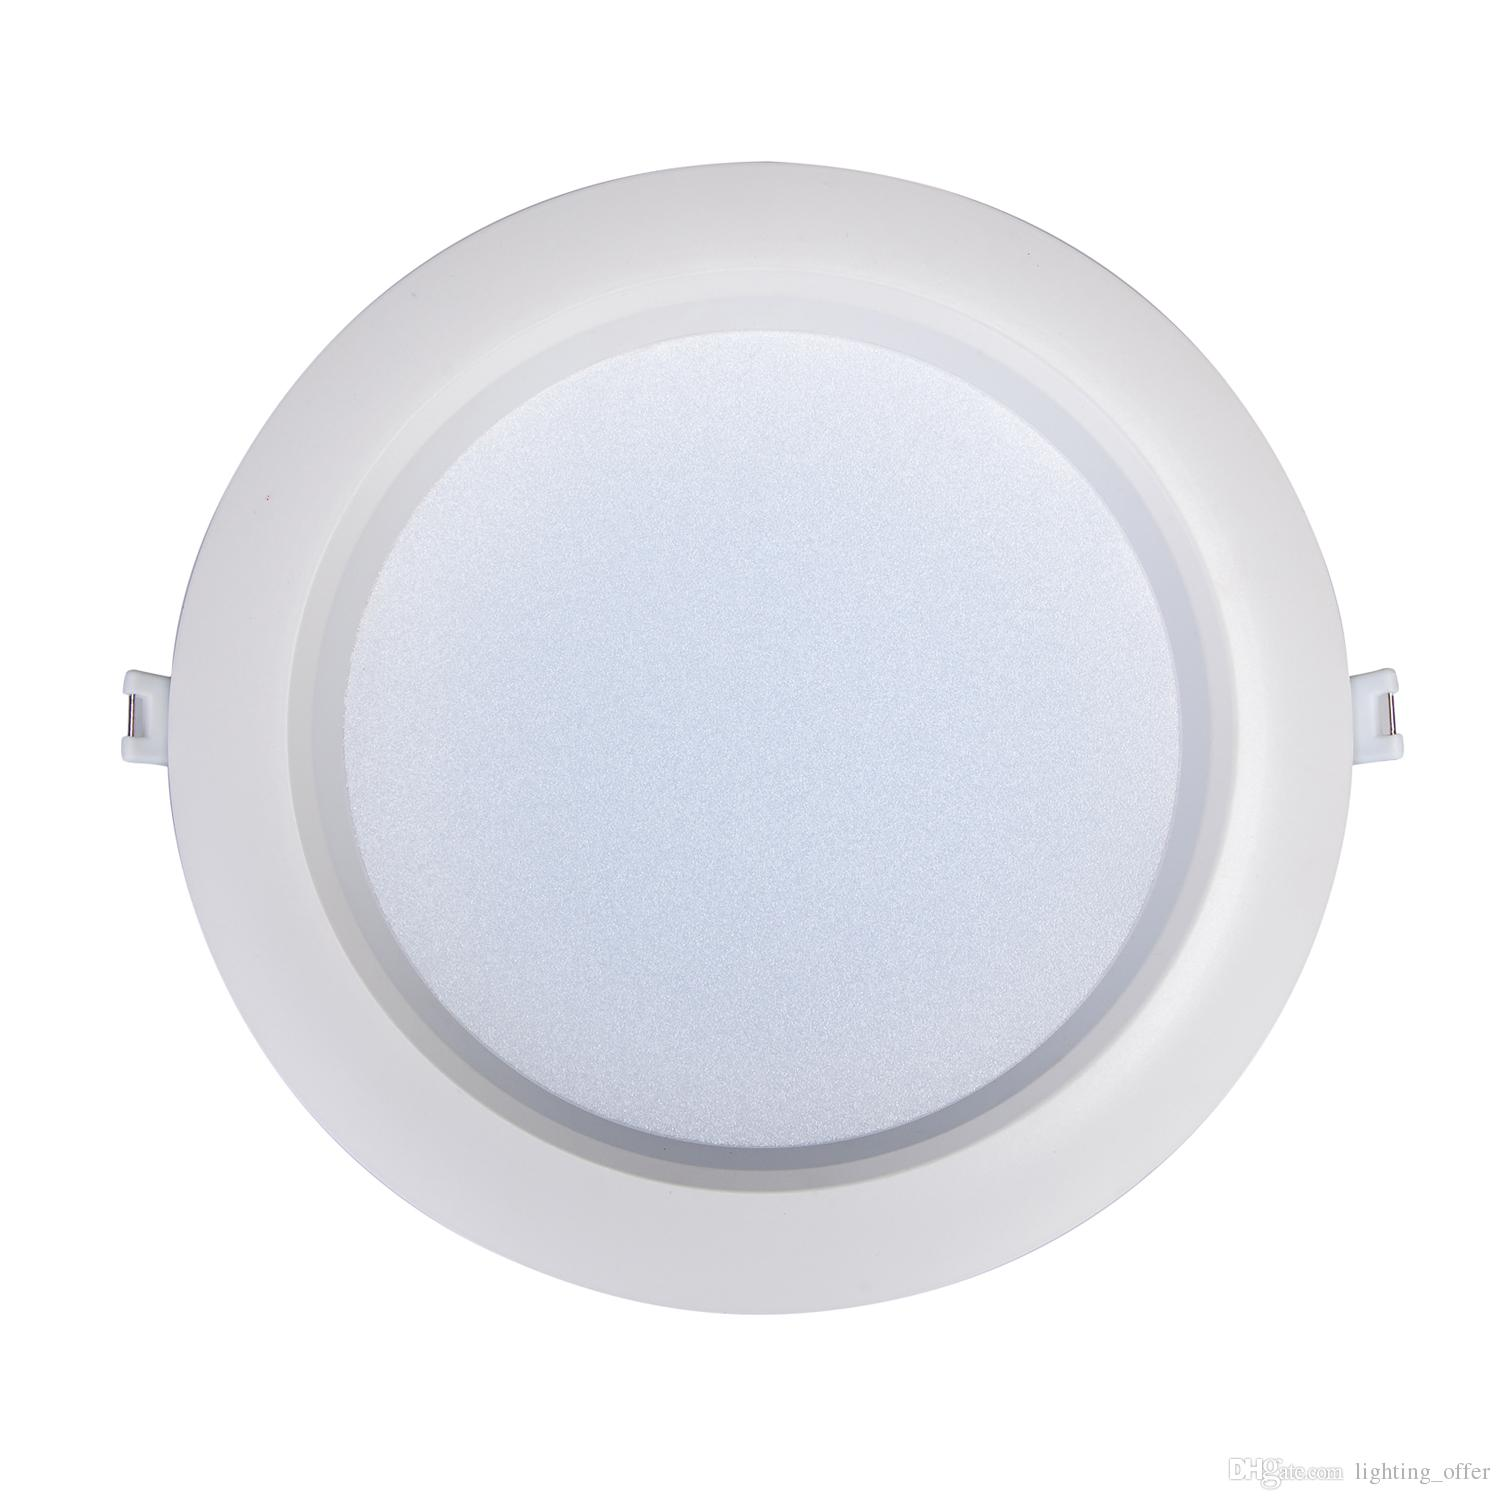 Kitchen Ceiling Led Lighting 24 Watt Round Led Ceiling Light Recessed Kitchen Bathroom Lamp